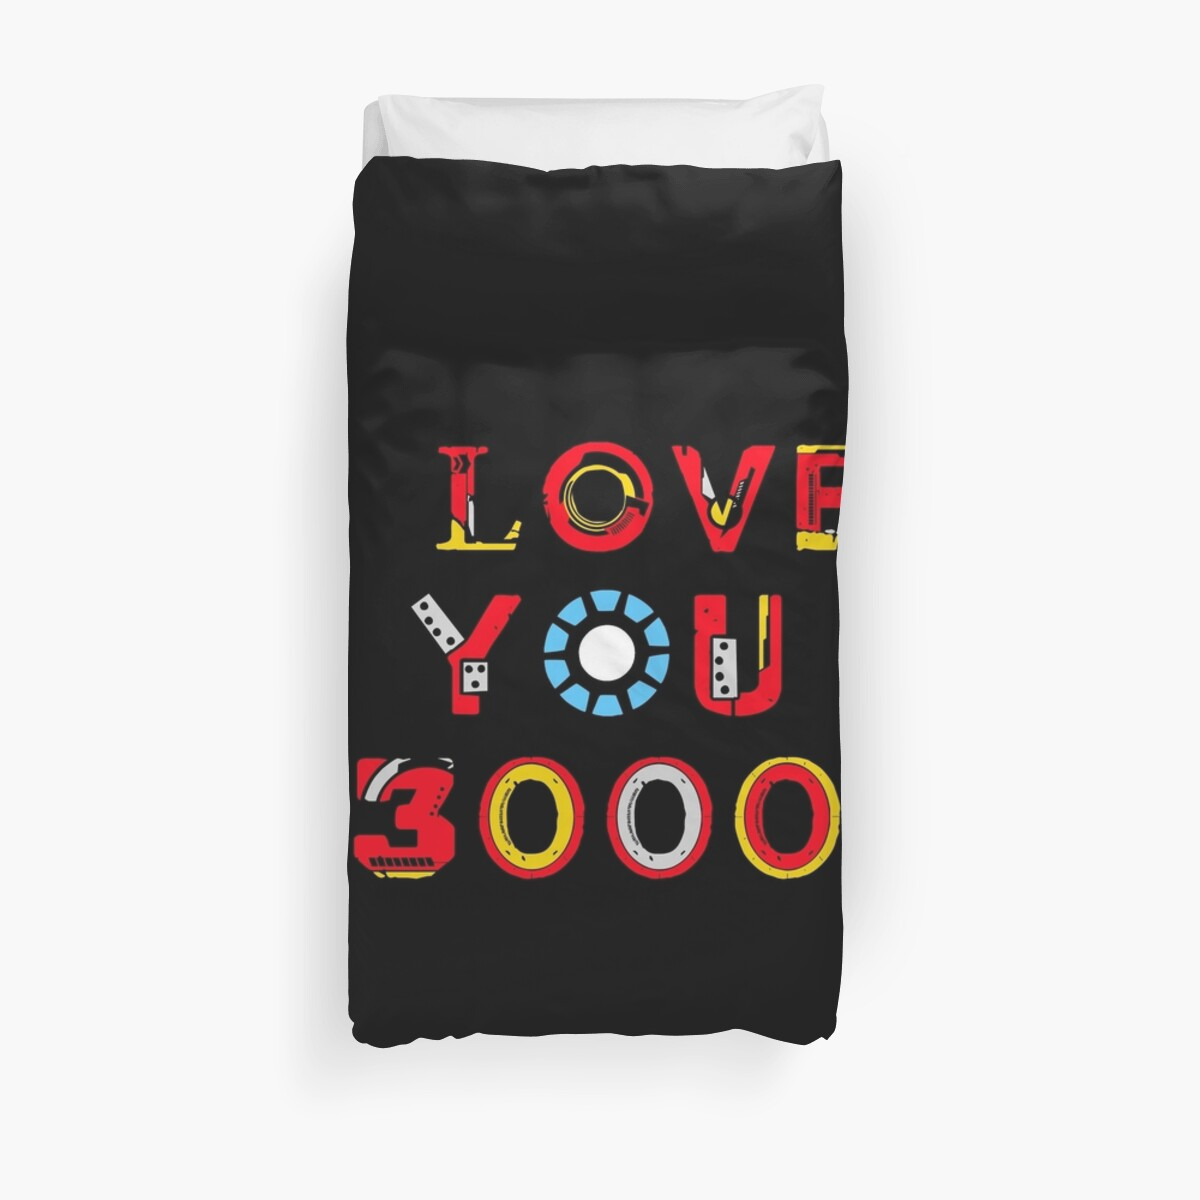 I Love You 3000 v2 by VanHand